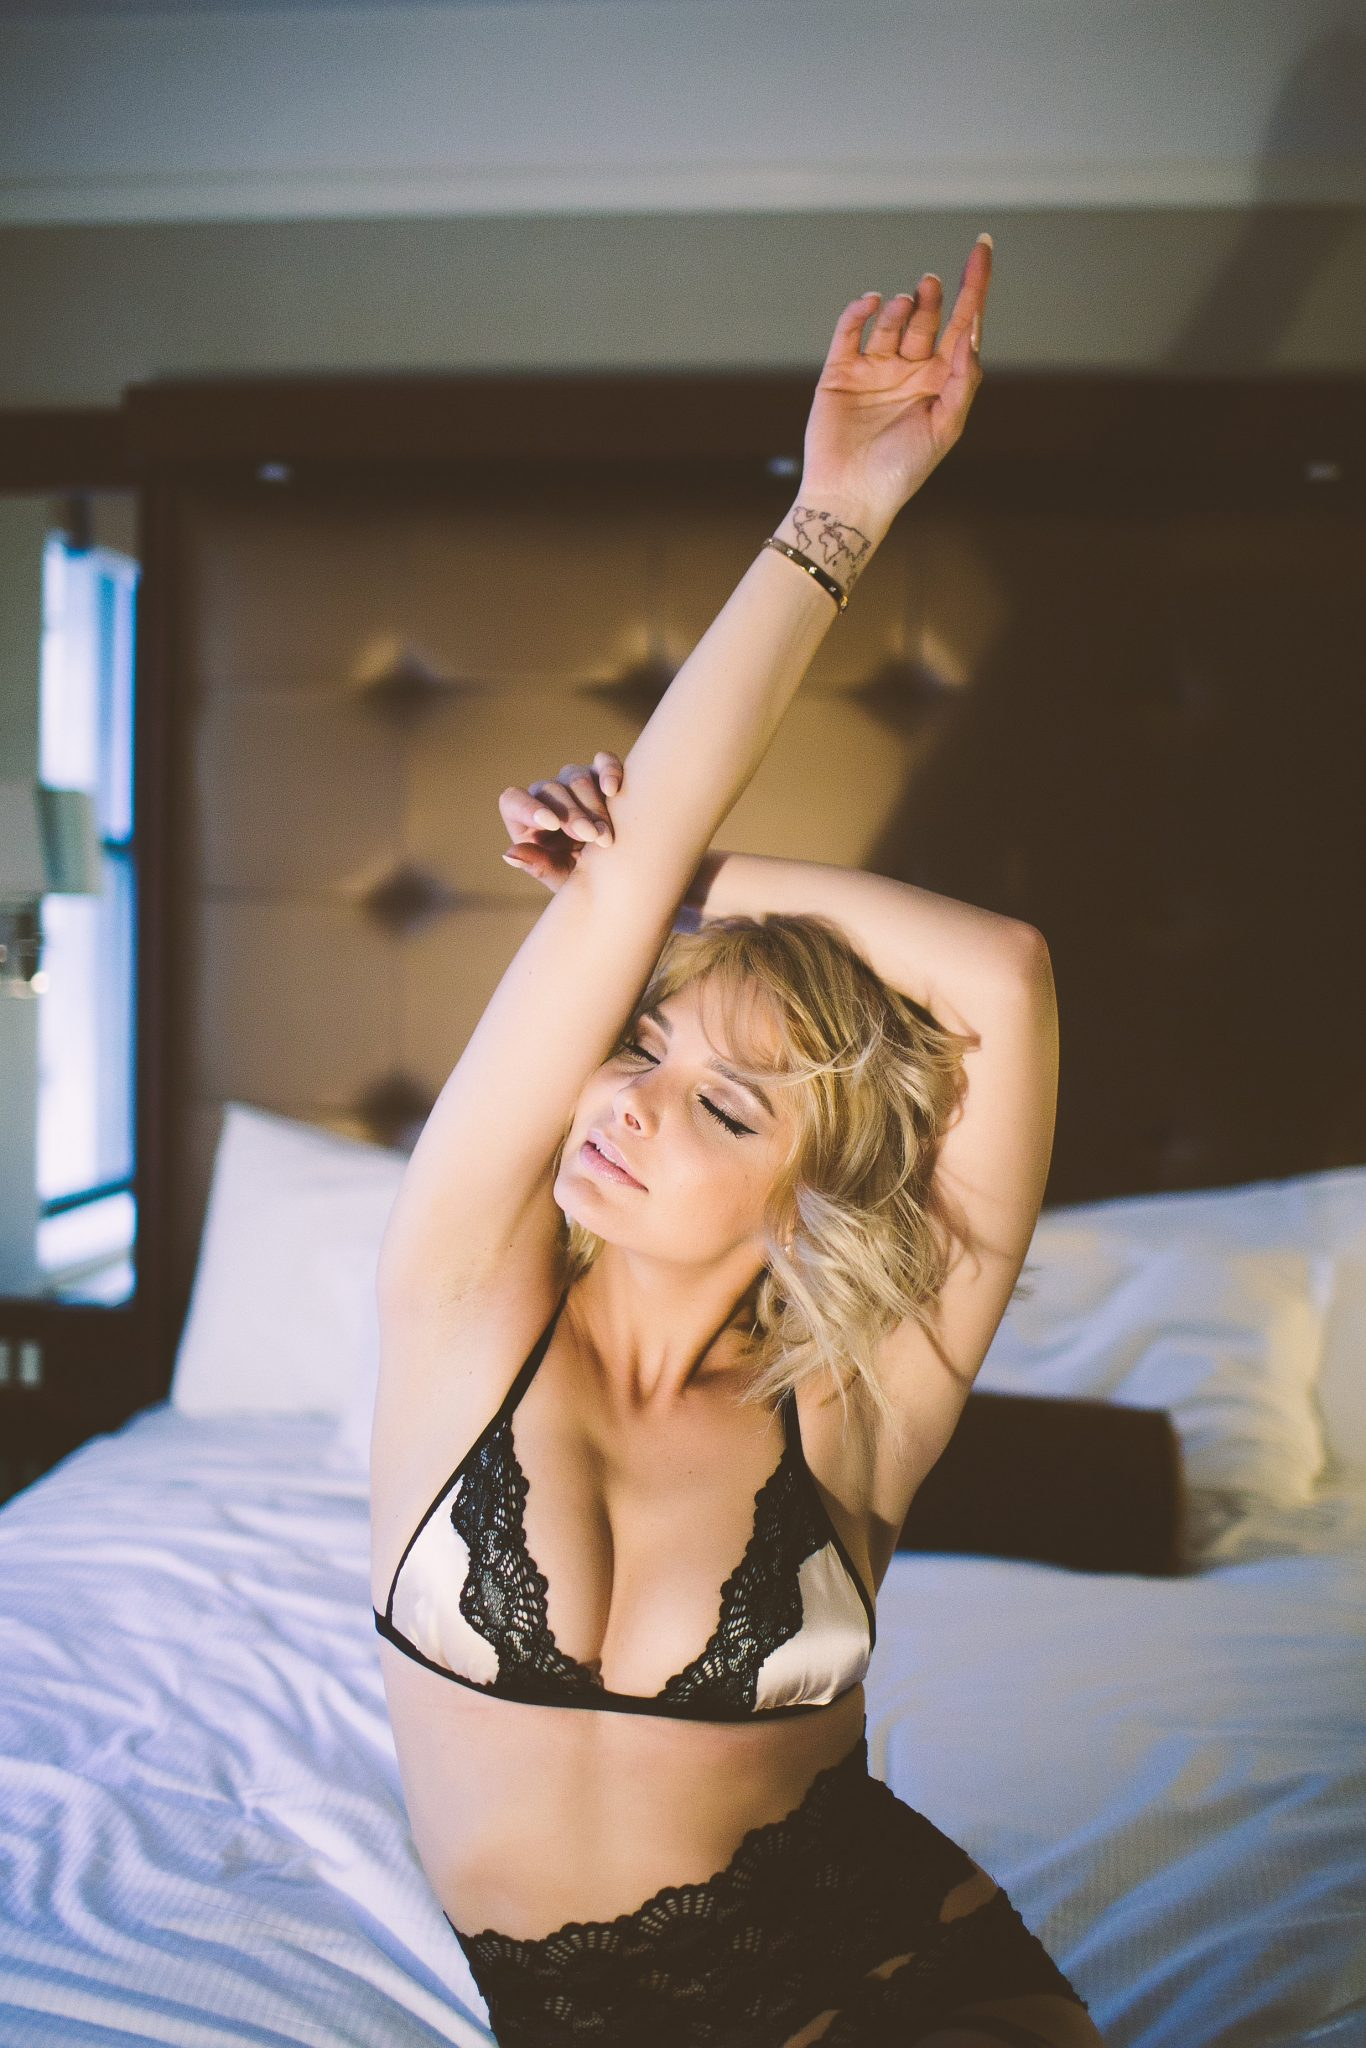 Model stretching before getting out of bed